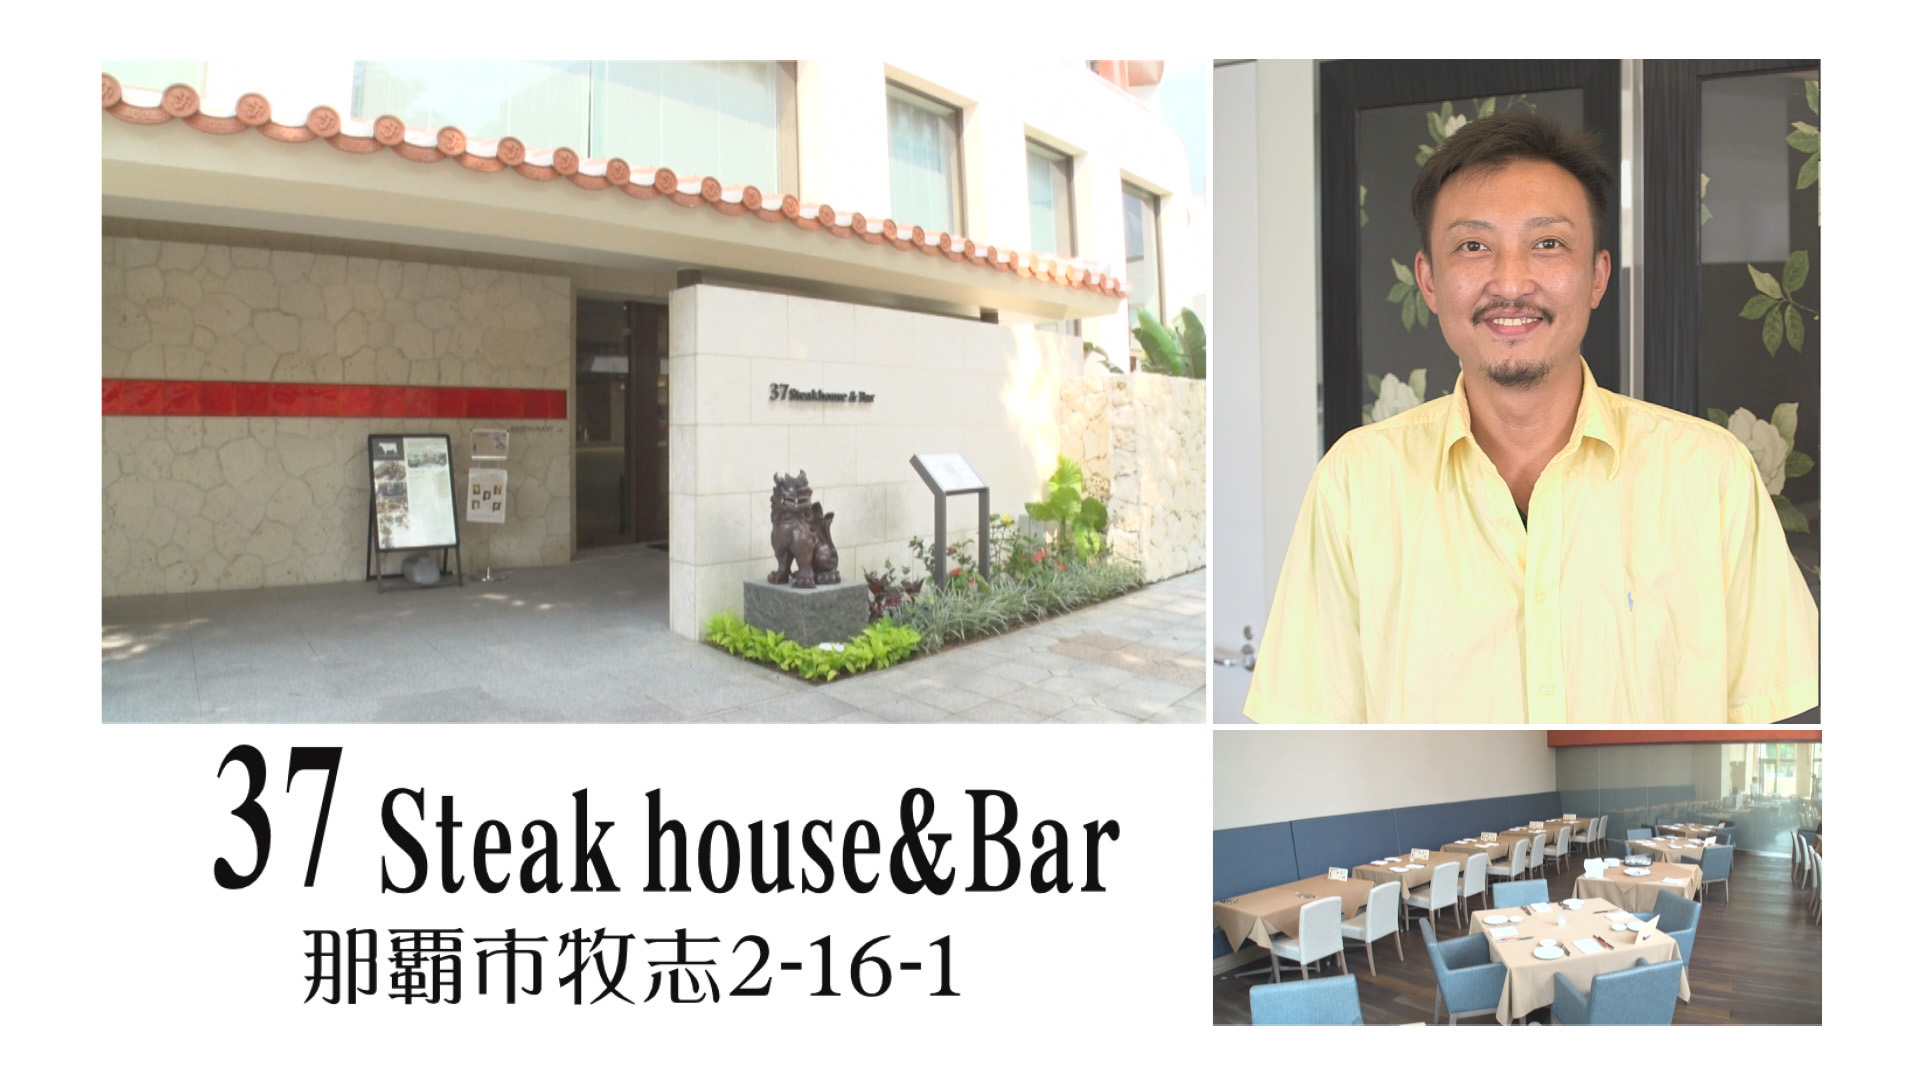 37 Steakhouse&Bar